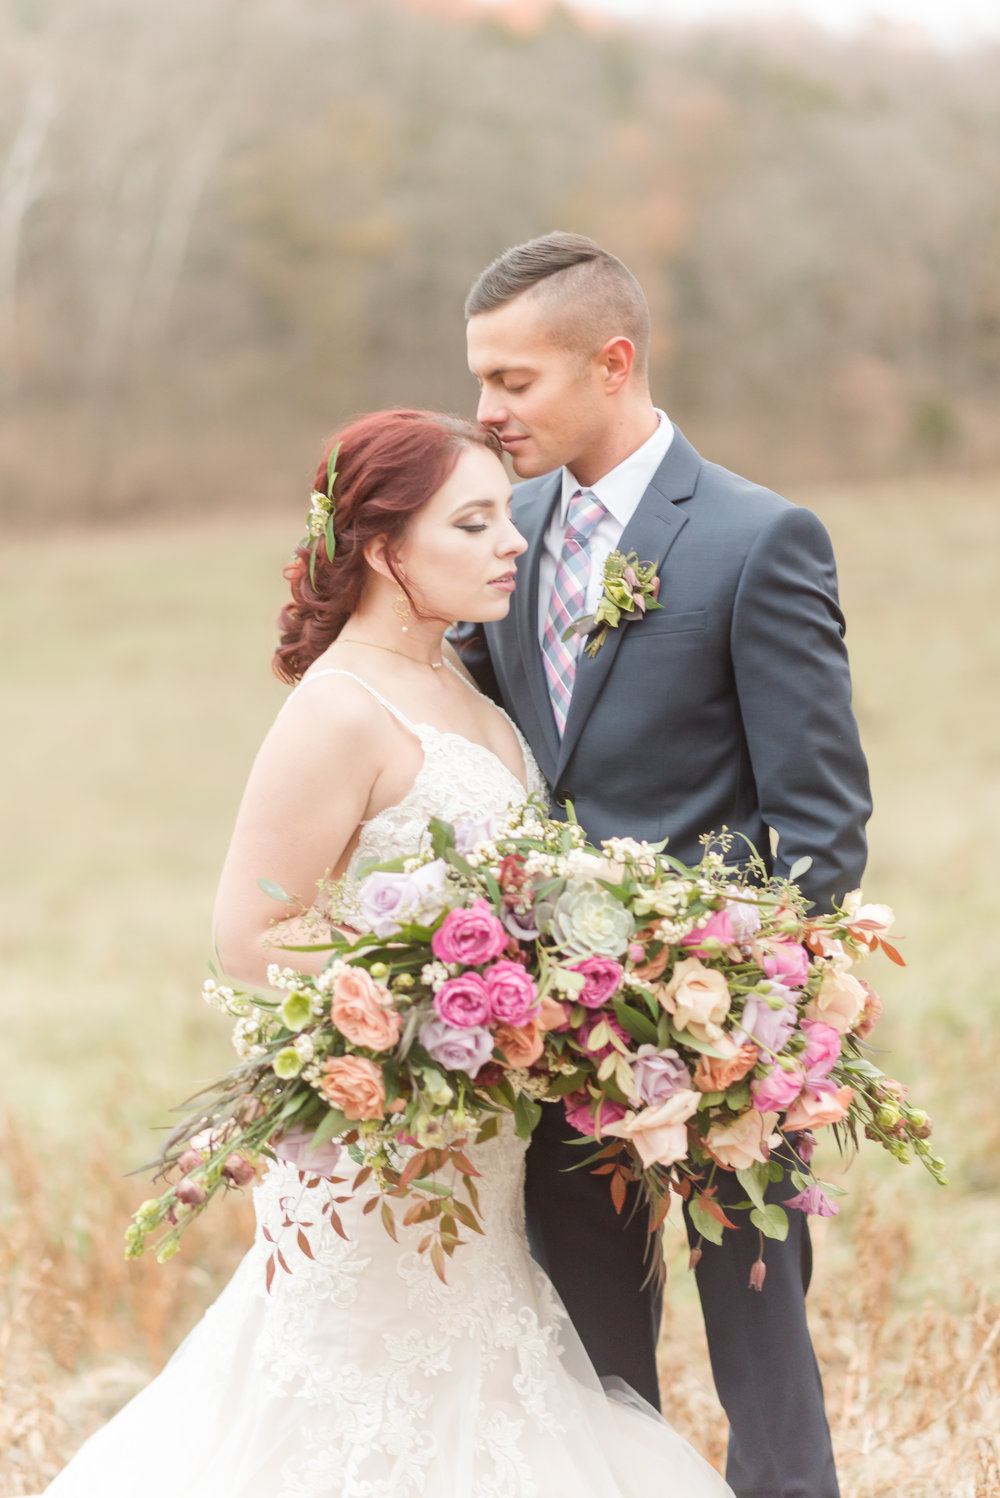 The 5 benefits of Friday and Sunday Weddings